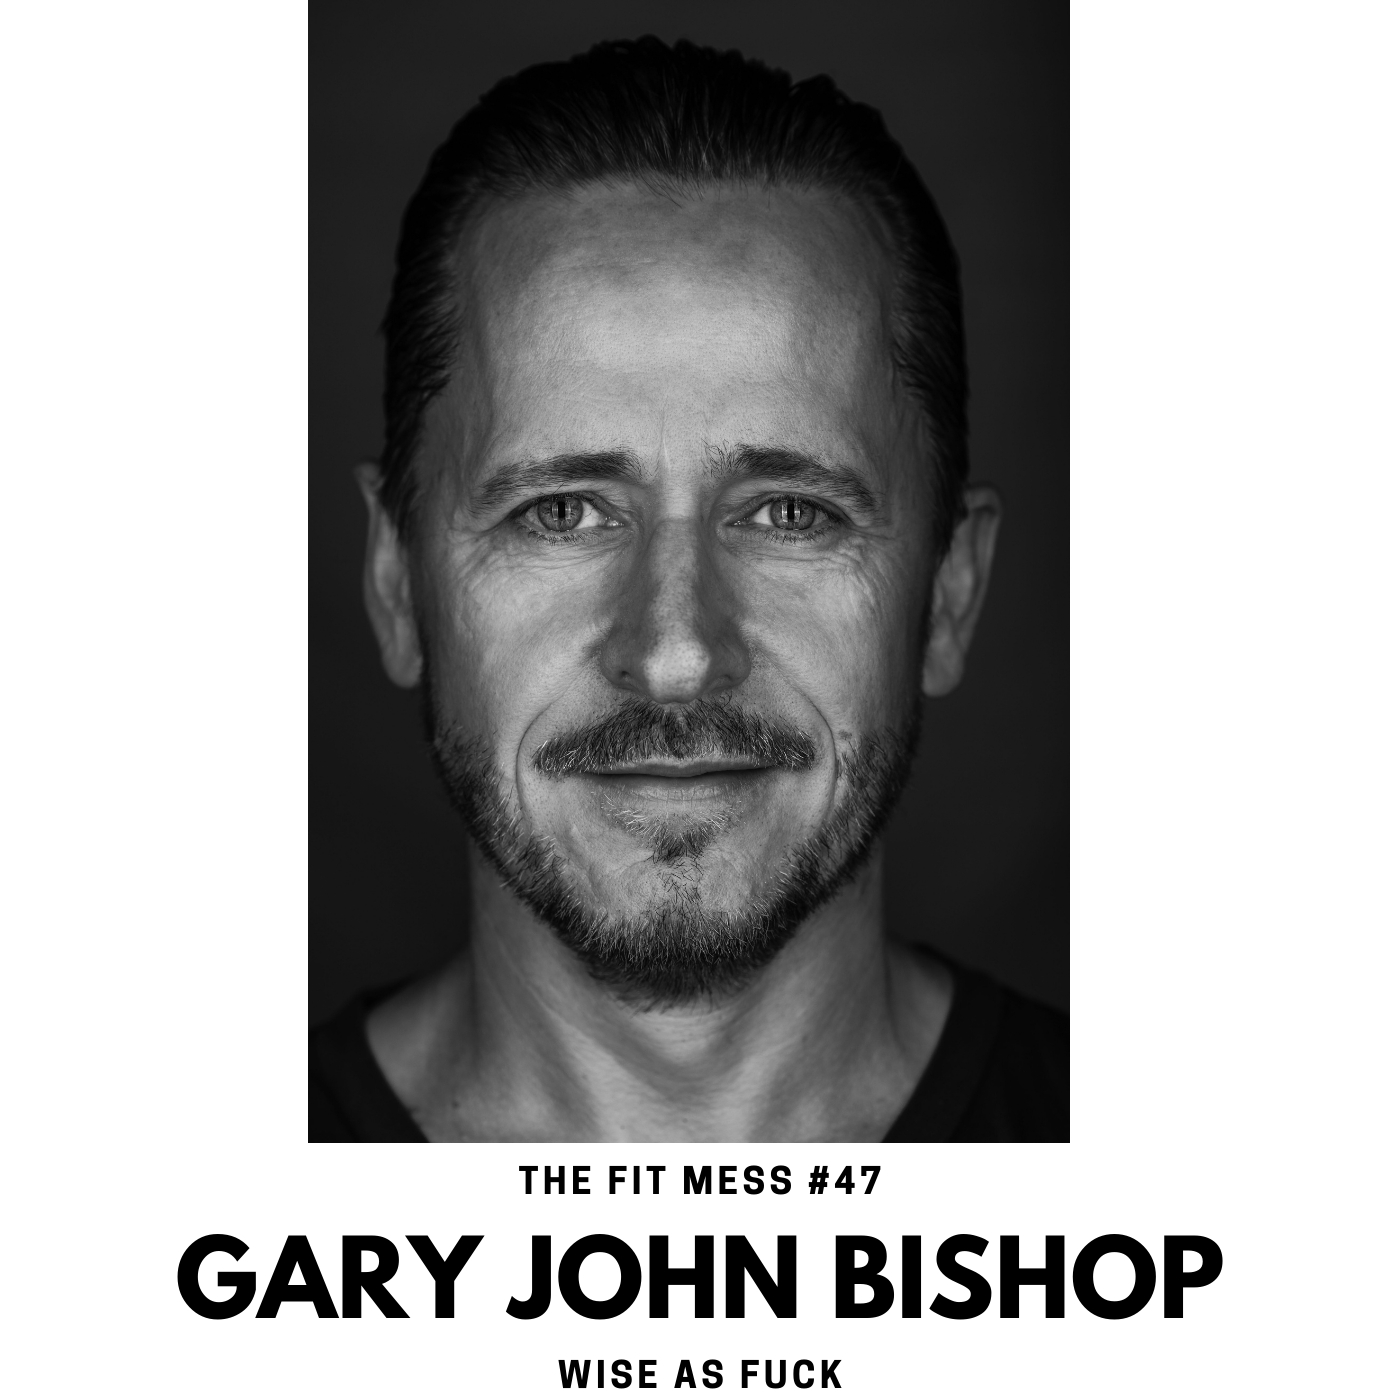 Gary John Bishop on the Wisdom of Love, Loss, and Fear.